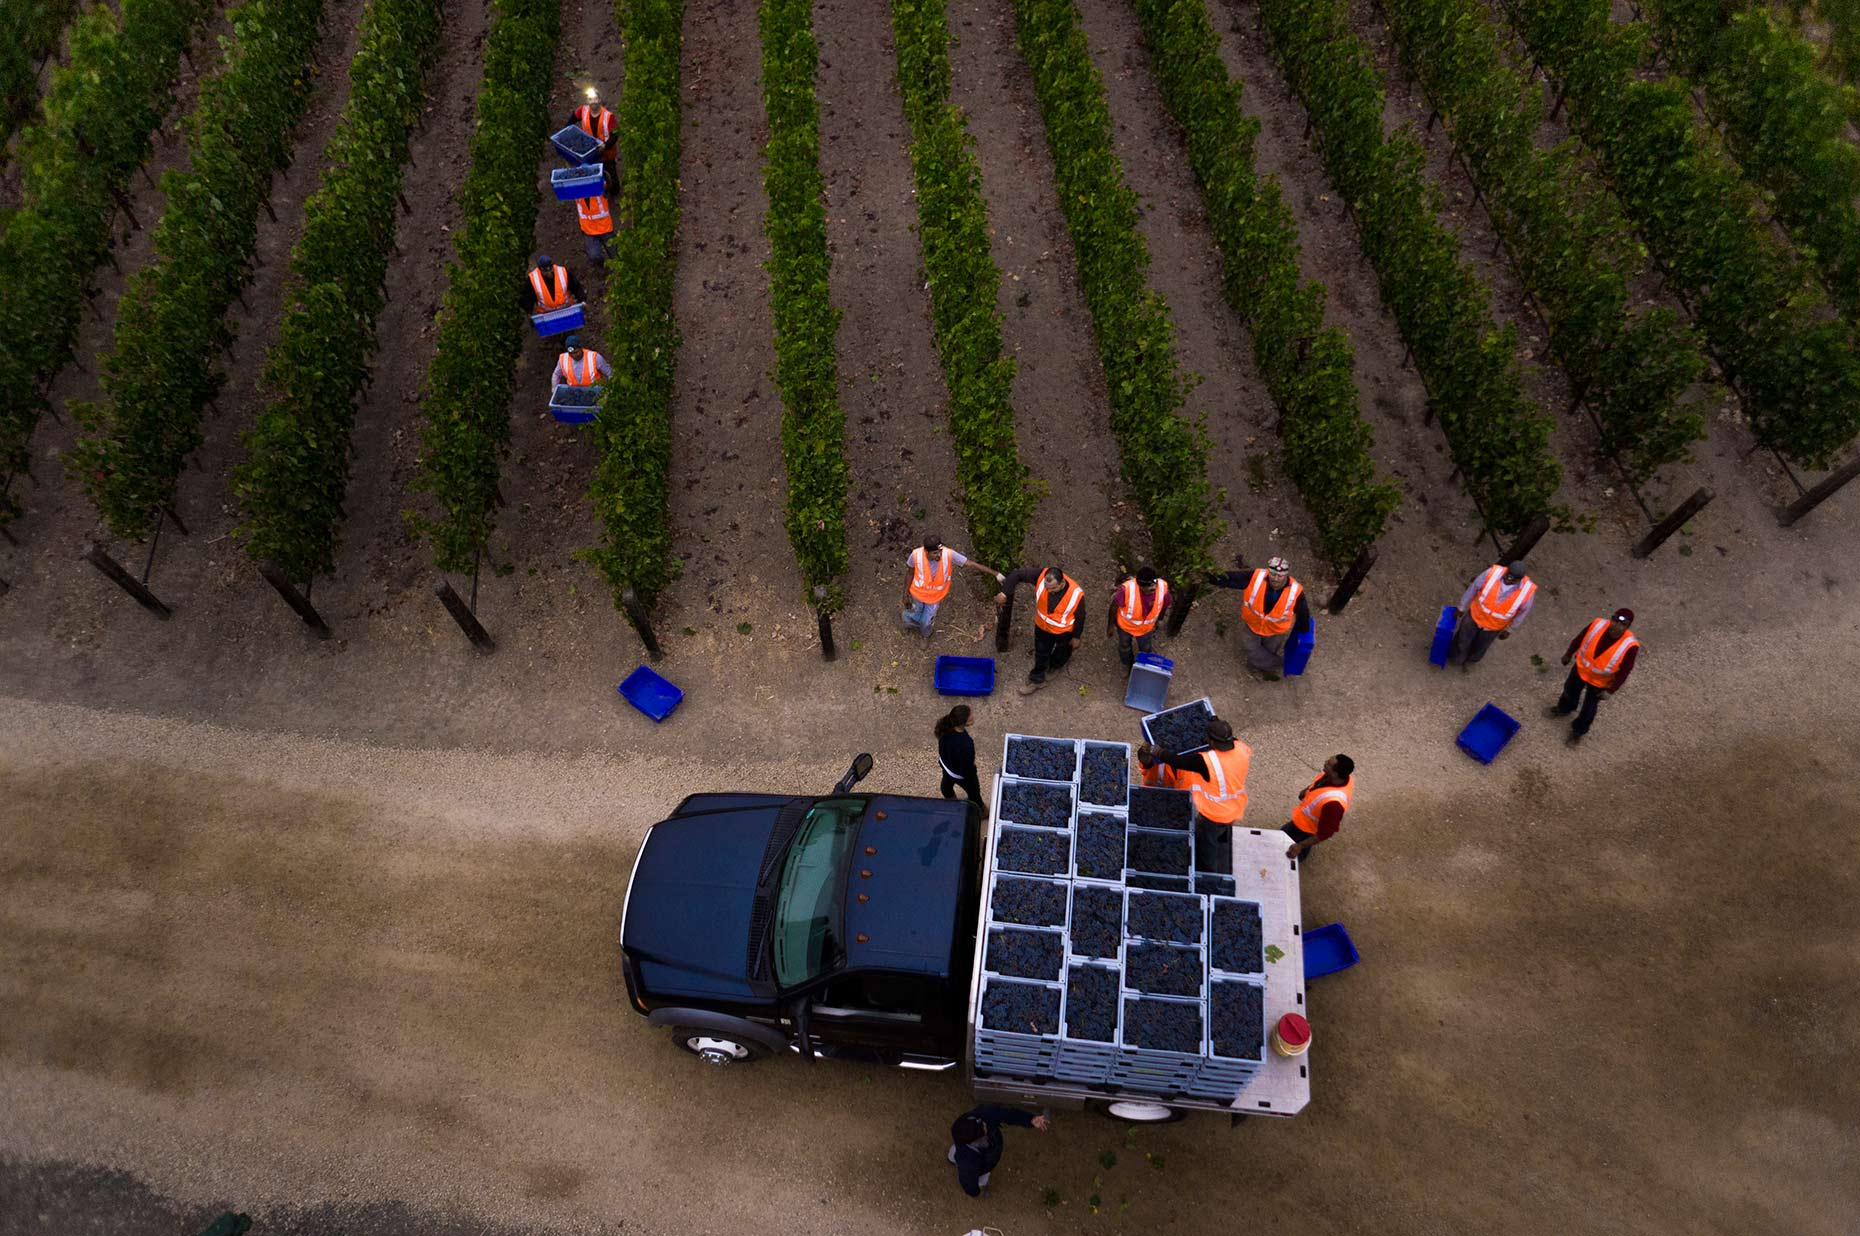 Napa Valley wine grape harvest aerial photography by Jason Tinacci